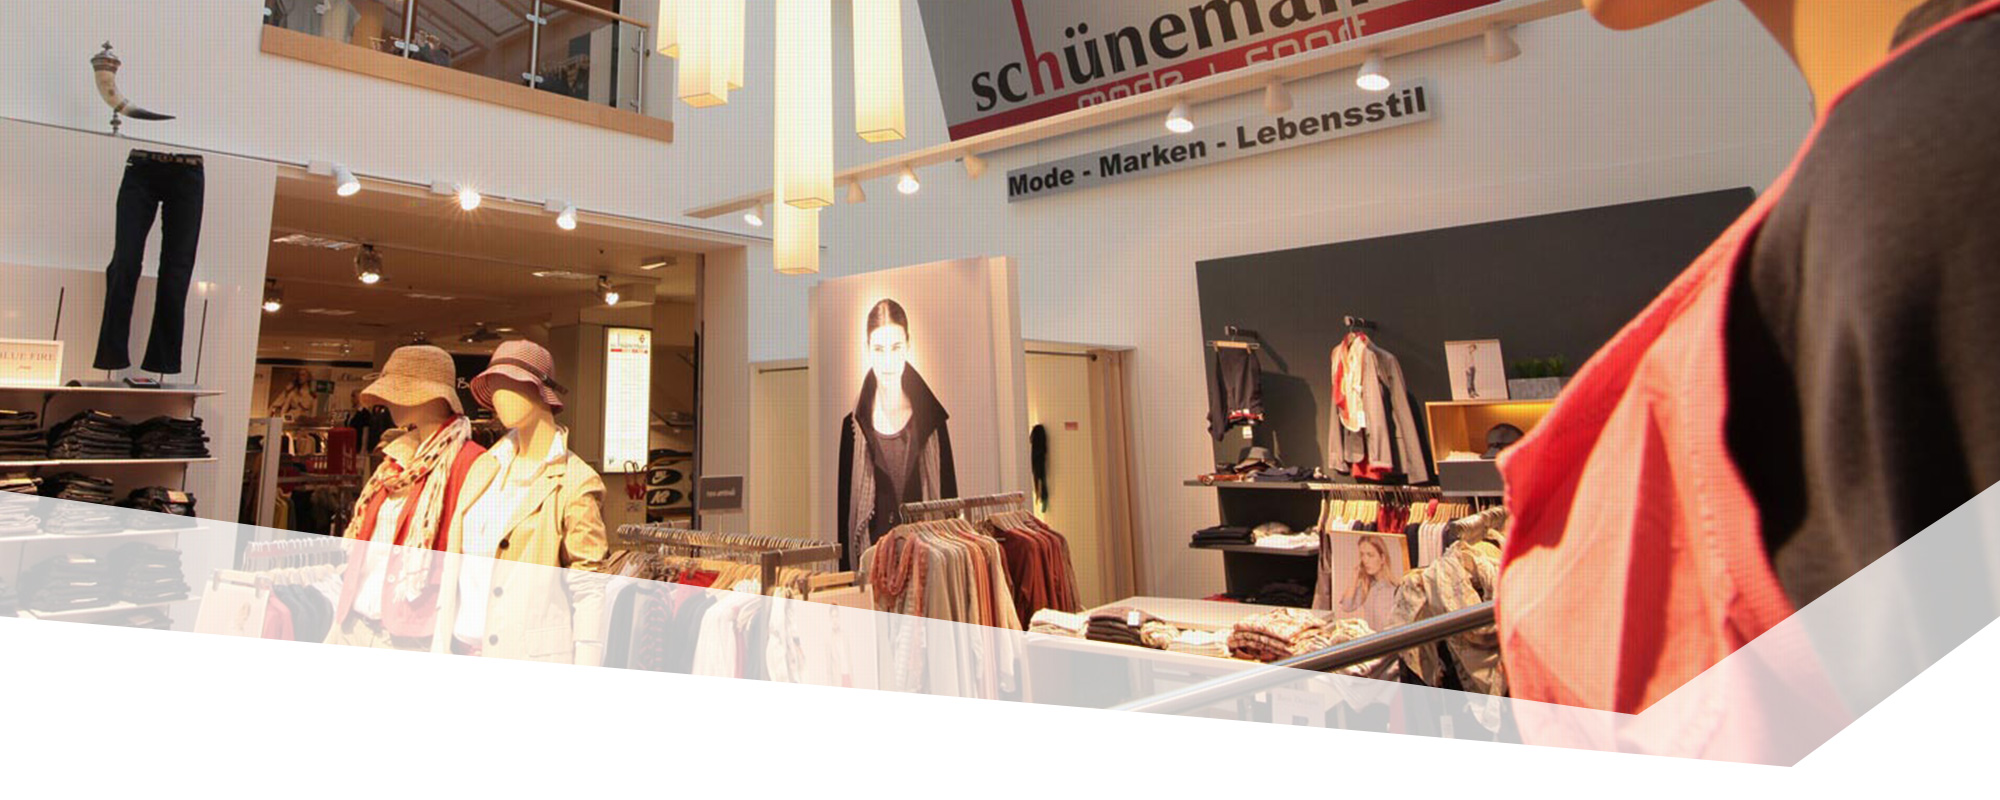 schuenemann__header2